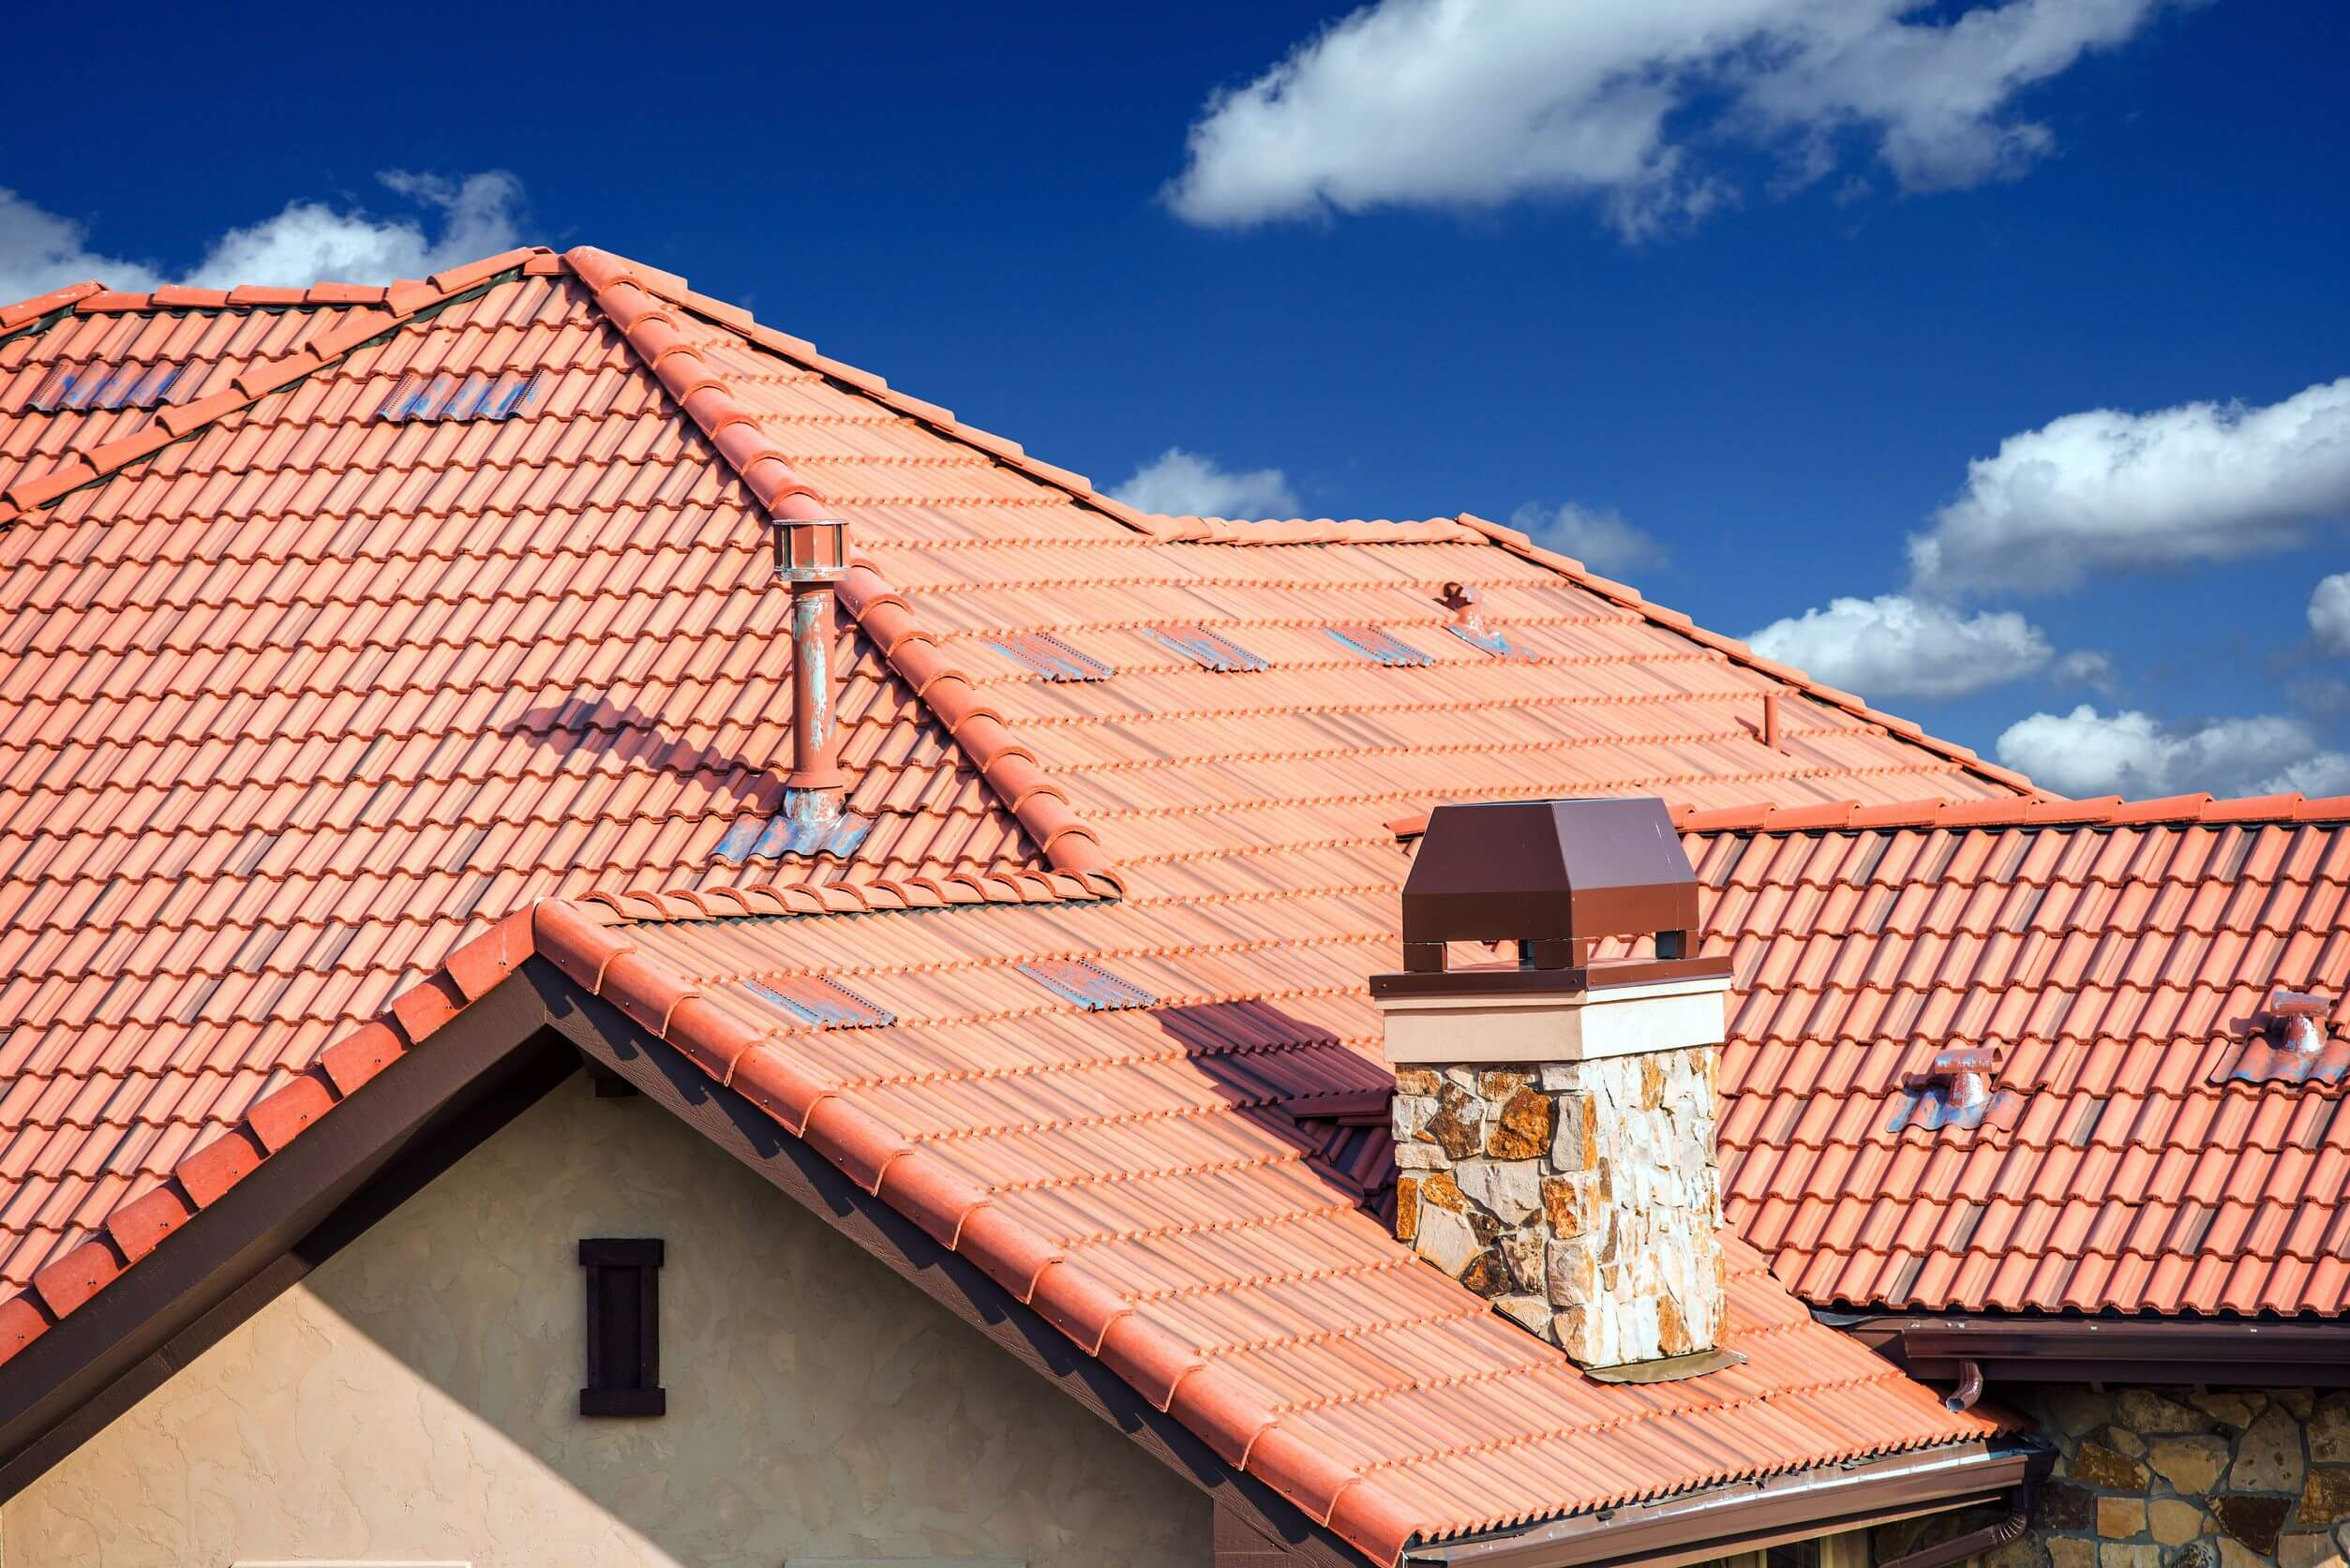 Your Guide to Filing a Roof Insurance Claim in Texas